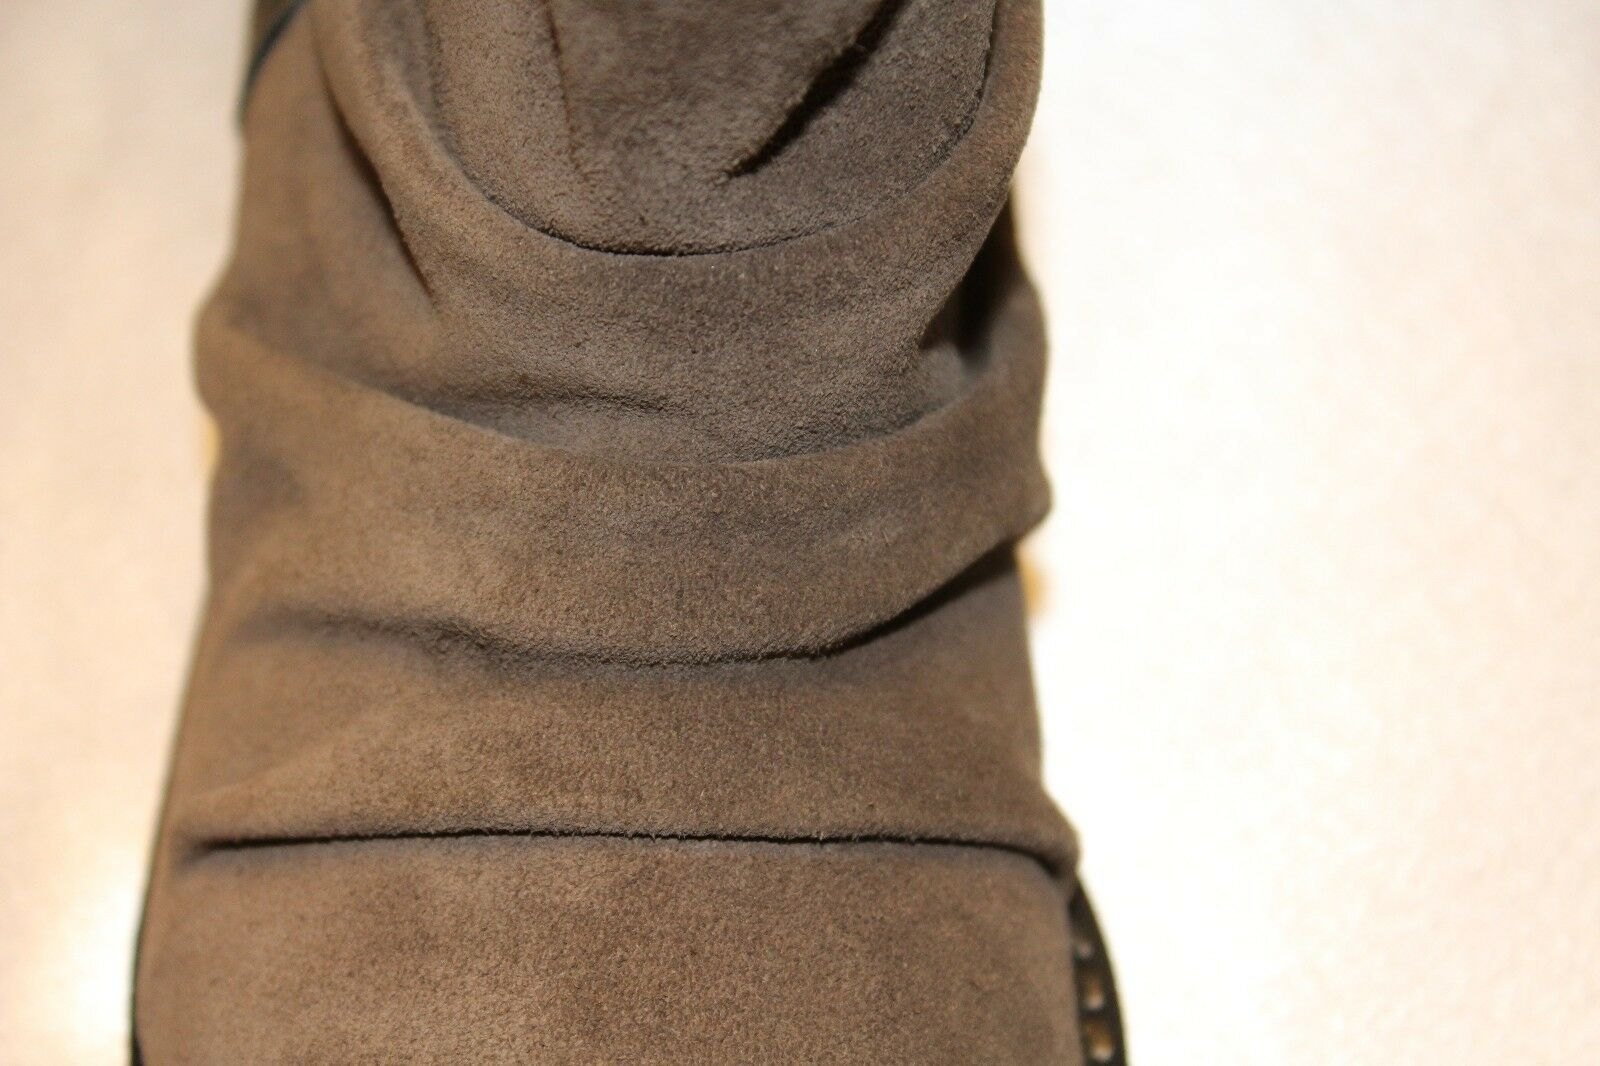 NEU  NIB  JOES JEANS Ruched Taupe Suede JANETTE Pull On Ankle Stiefel 5.5 245